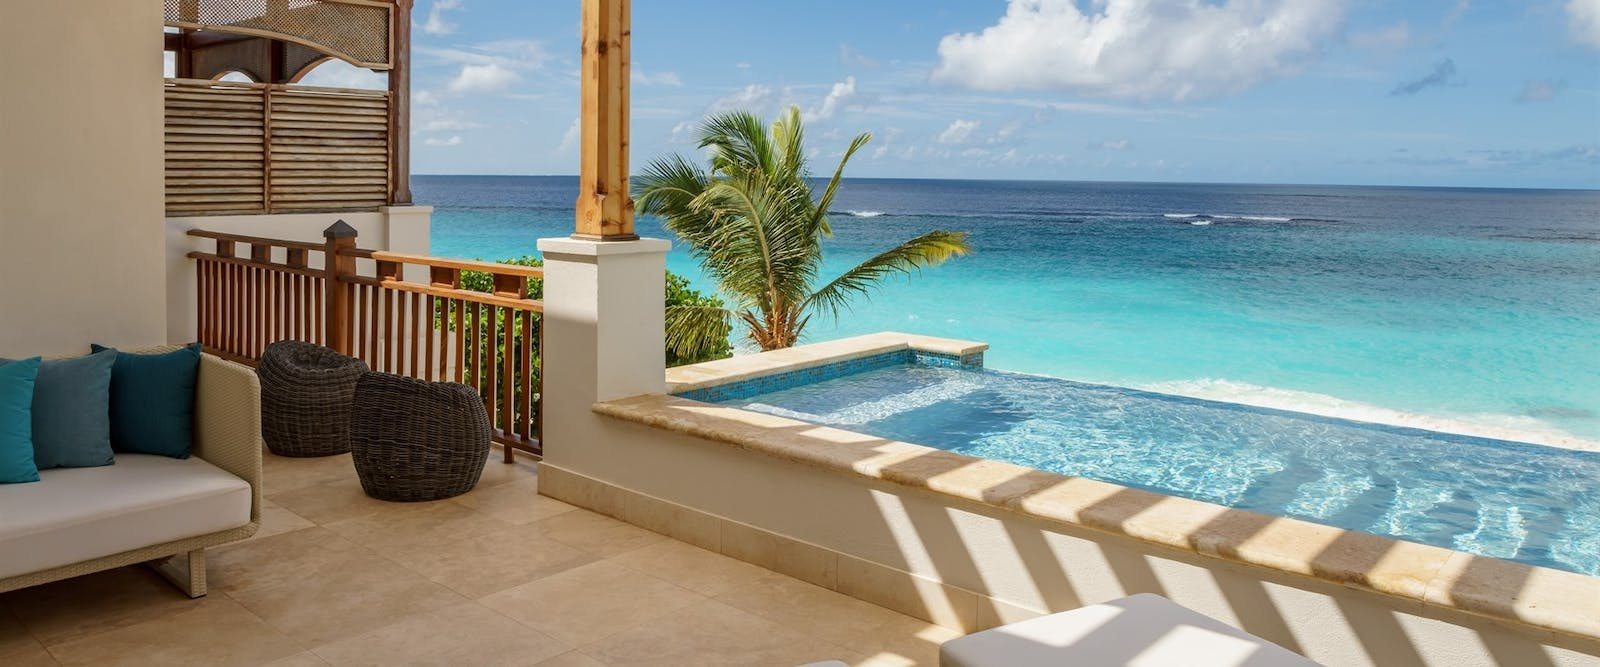 Beachfront Villa Suite with Private Pool at Zemi Beach House, Anguilla